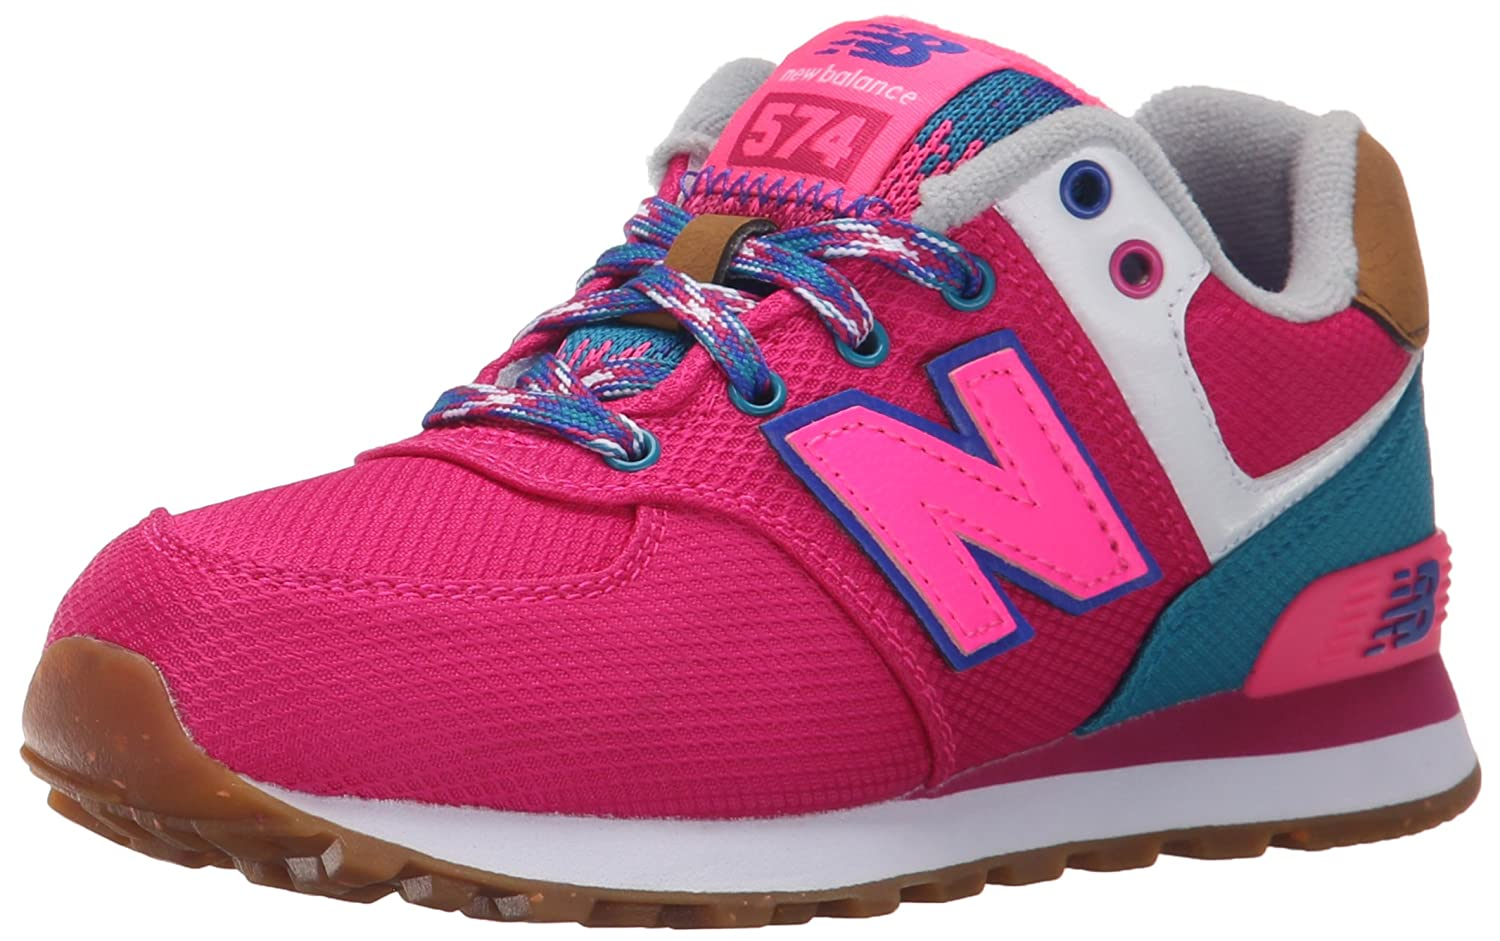 New Balance 476580-43, Chaussures lacées Fille New Balance KL574T4P Oxford fille Rose (Pink/Rose) 29